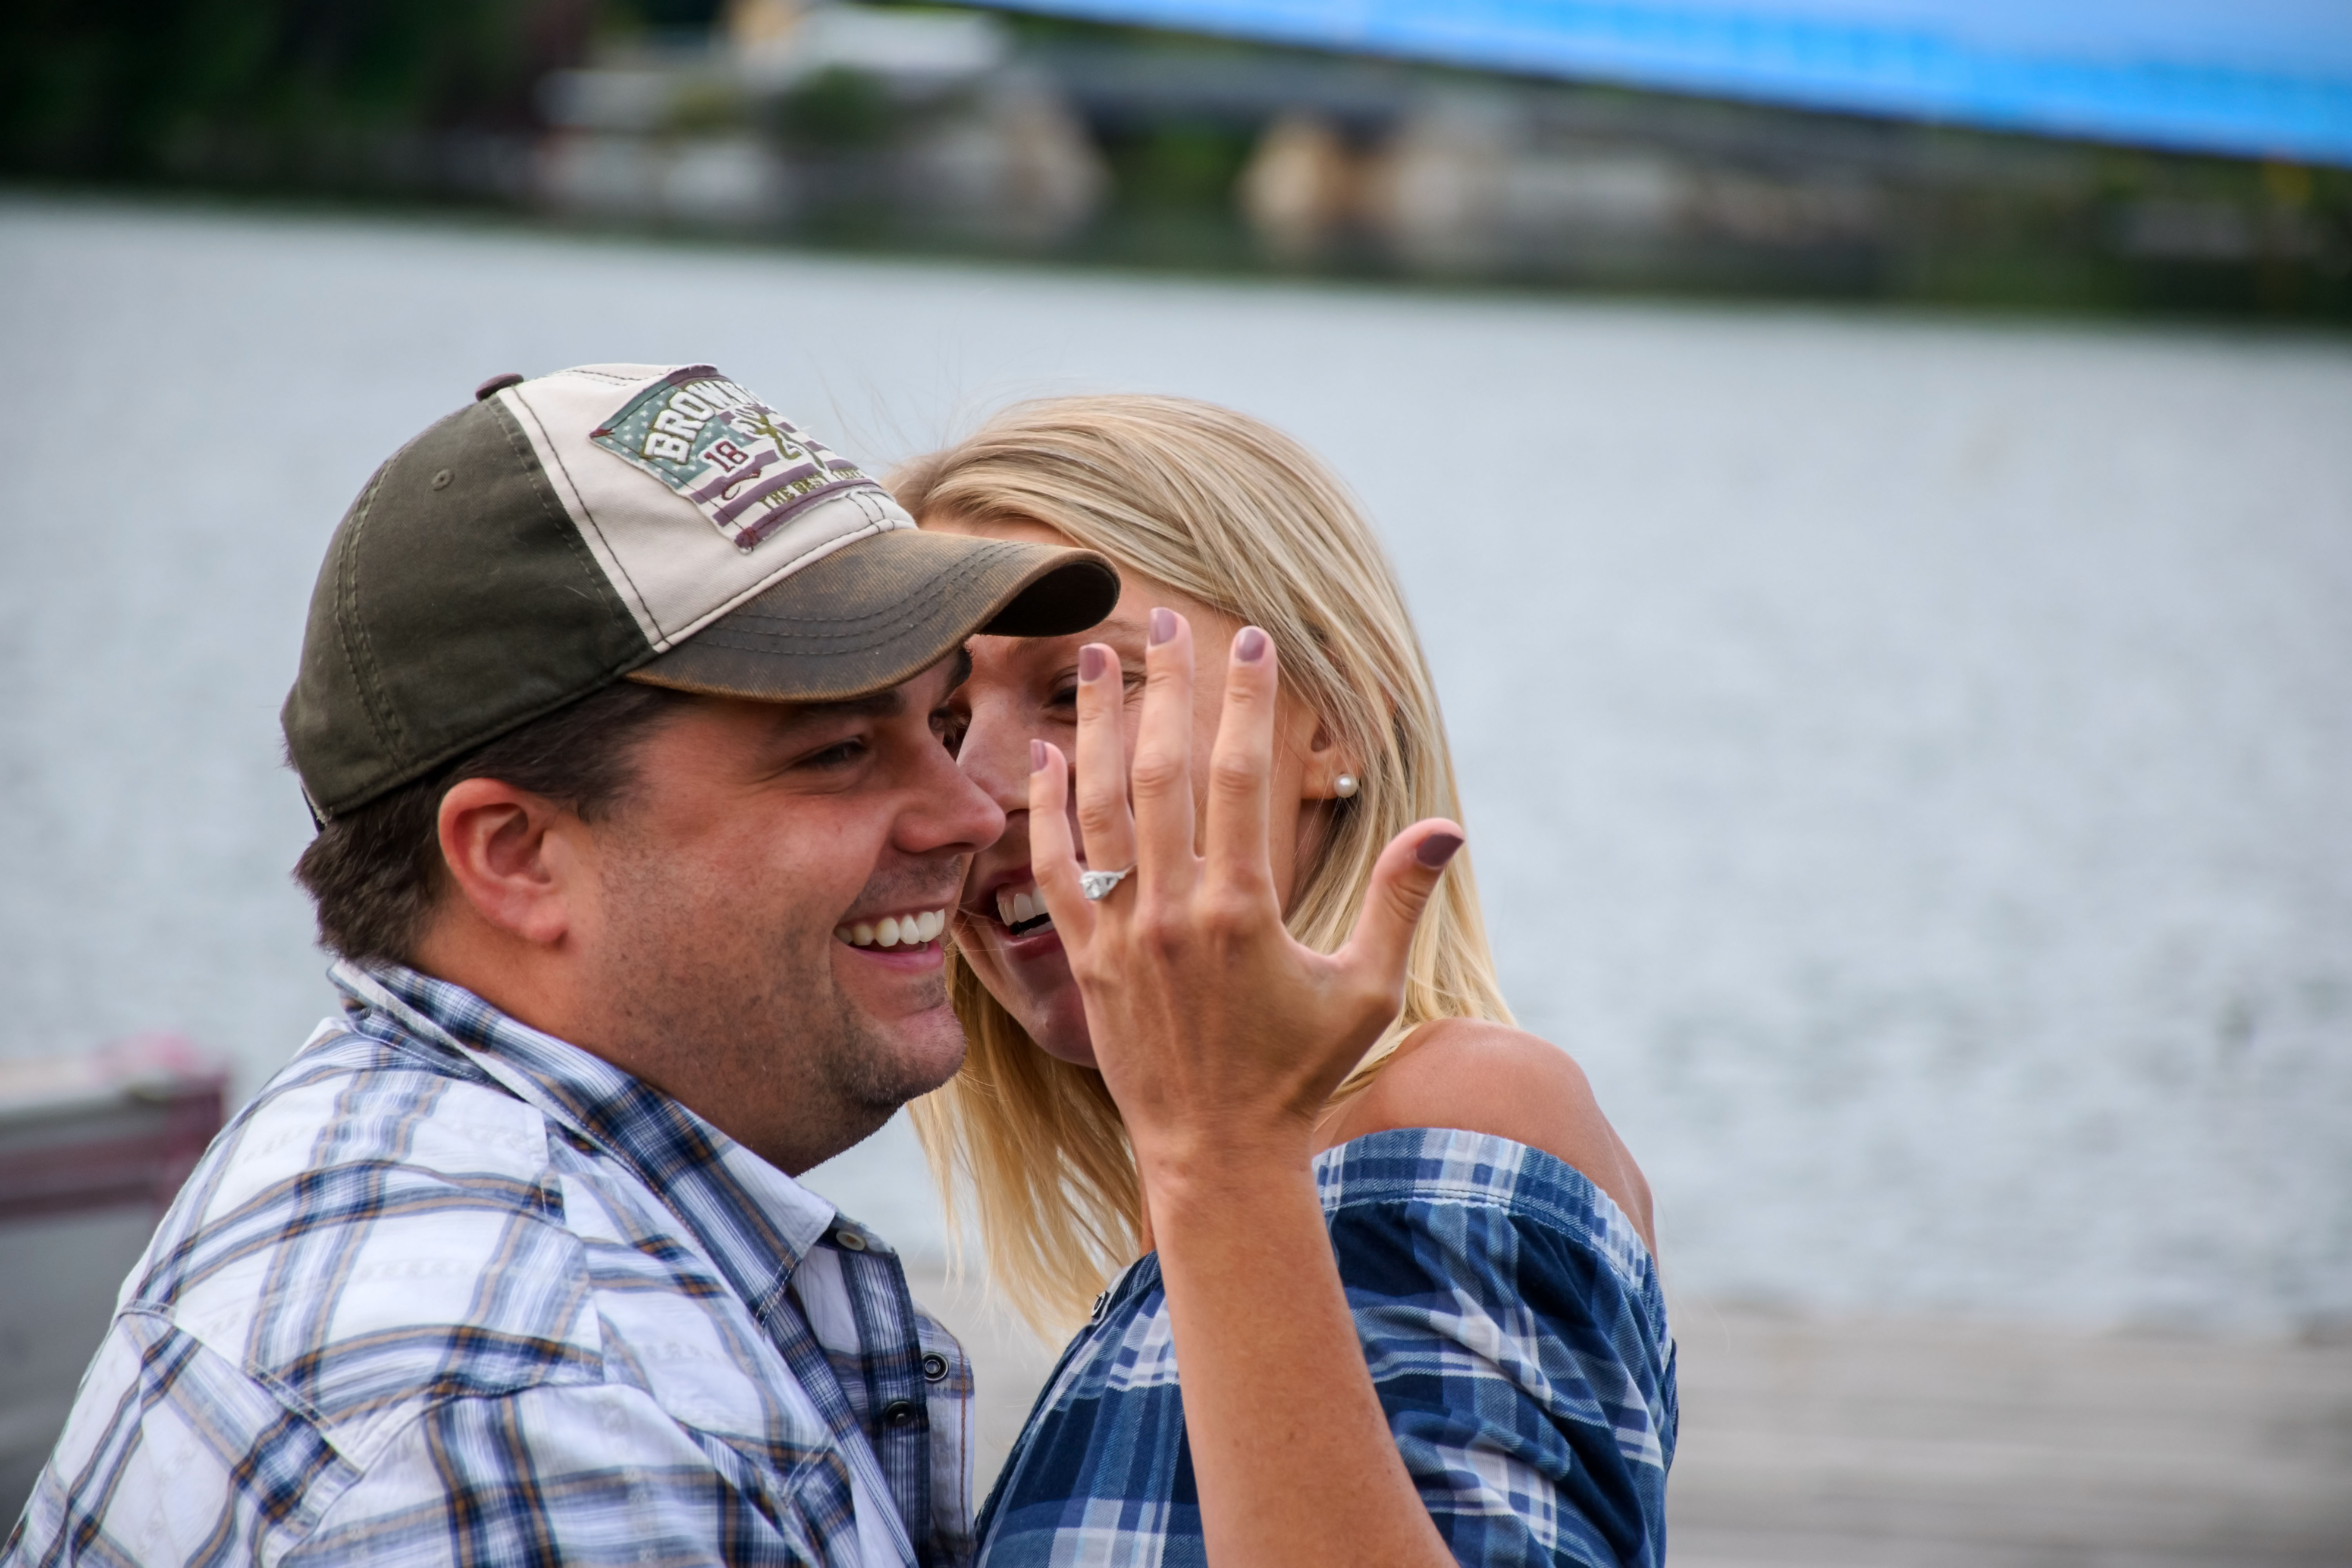 Engagement proposal captured in Inlet, NY 10